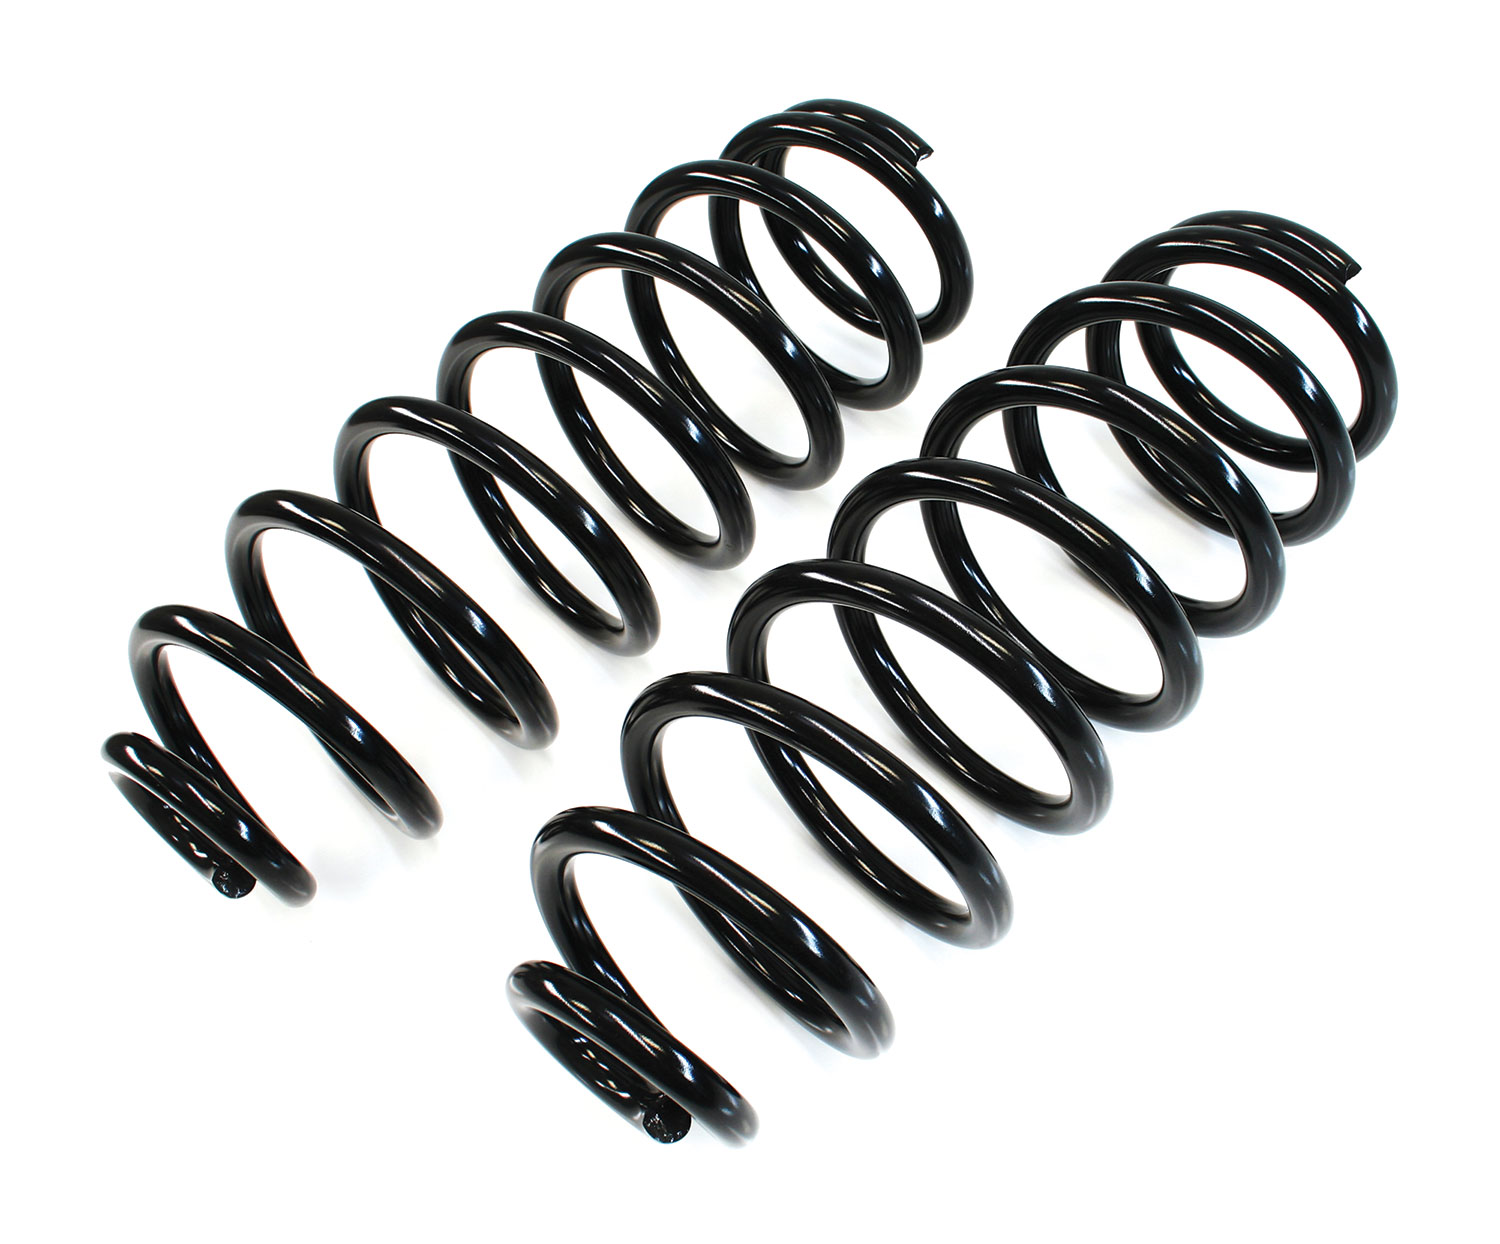 Teraflex Rear Coil Springs   - JK 4dr 3in/JK 2dr 4in